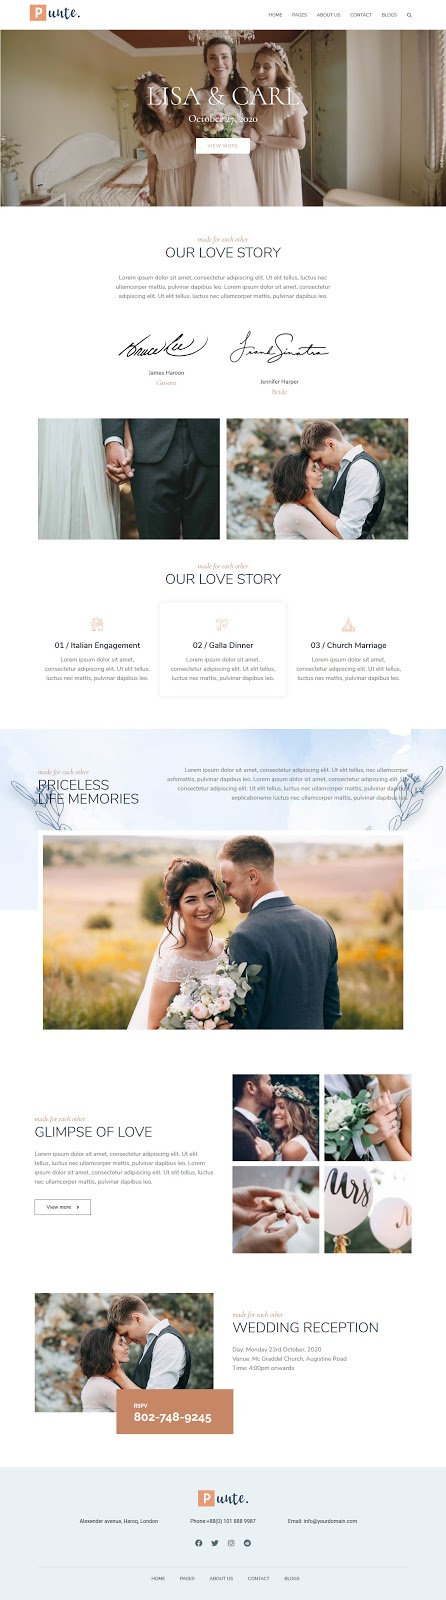 How to Make a Perfect Wedding Website using Punte - Free WordPress Theme